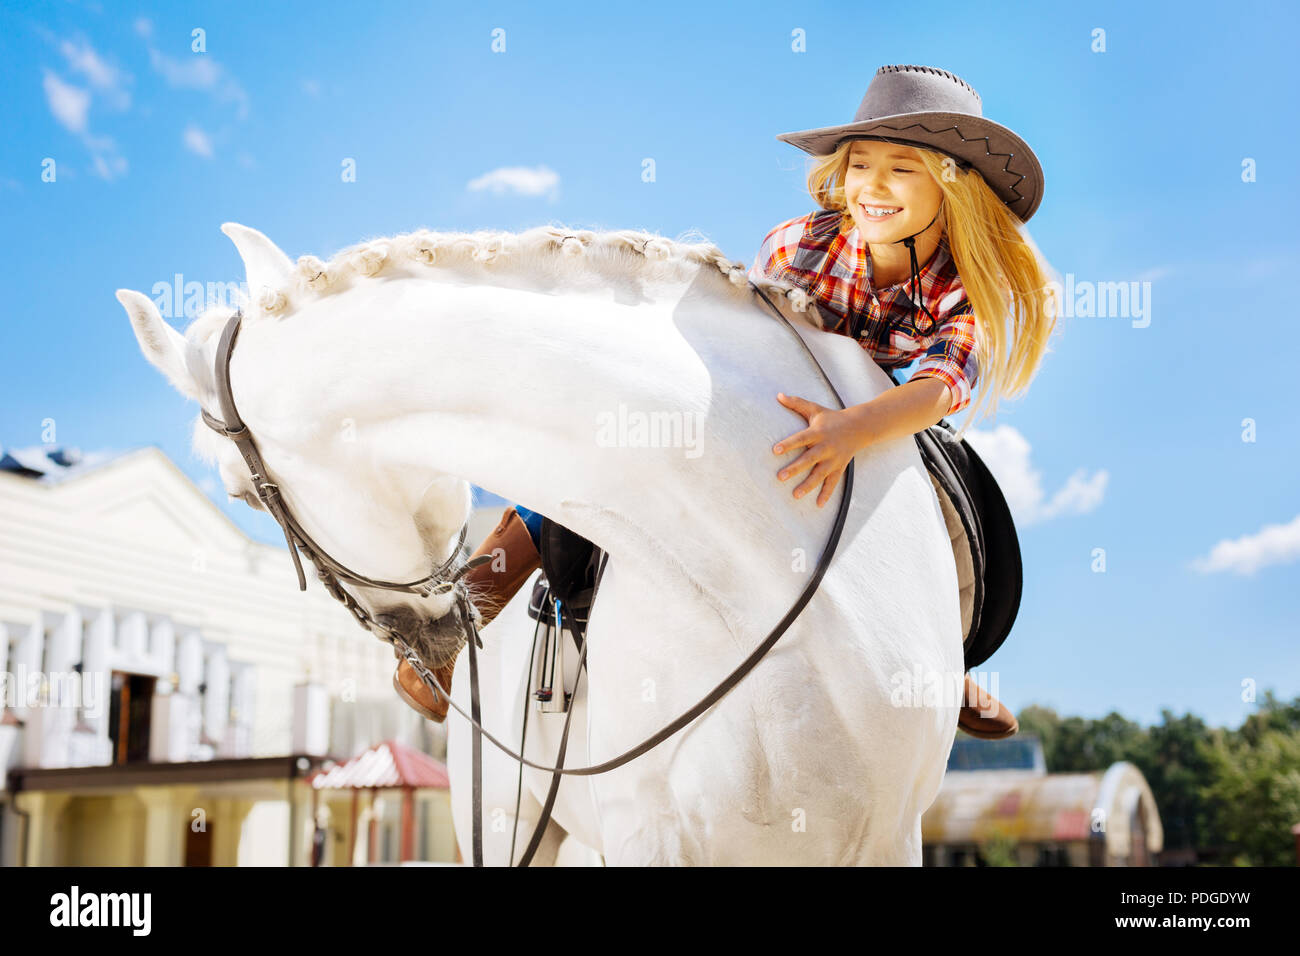 Beautiful cowboy girl having fun while riding her lovely horse - Stock Image